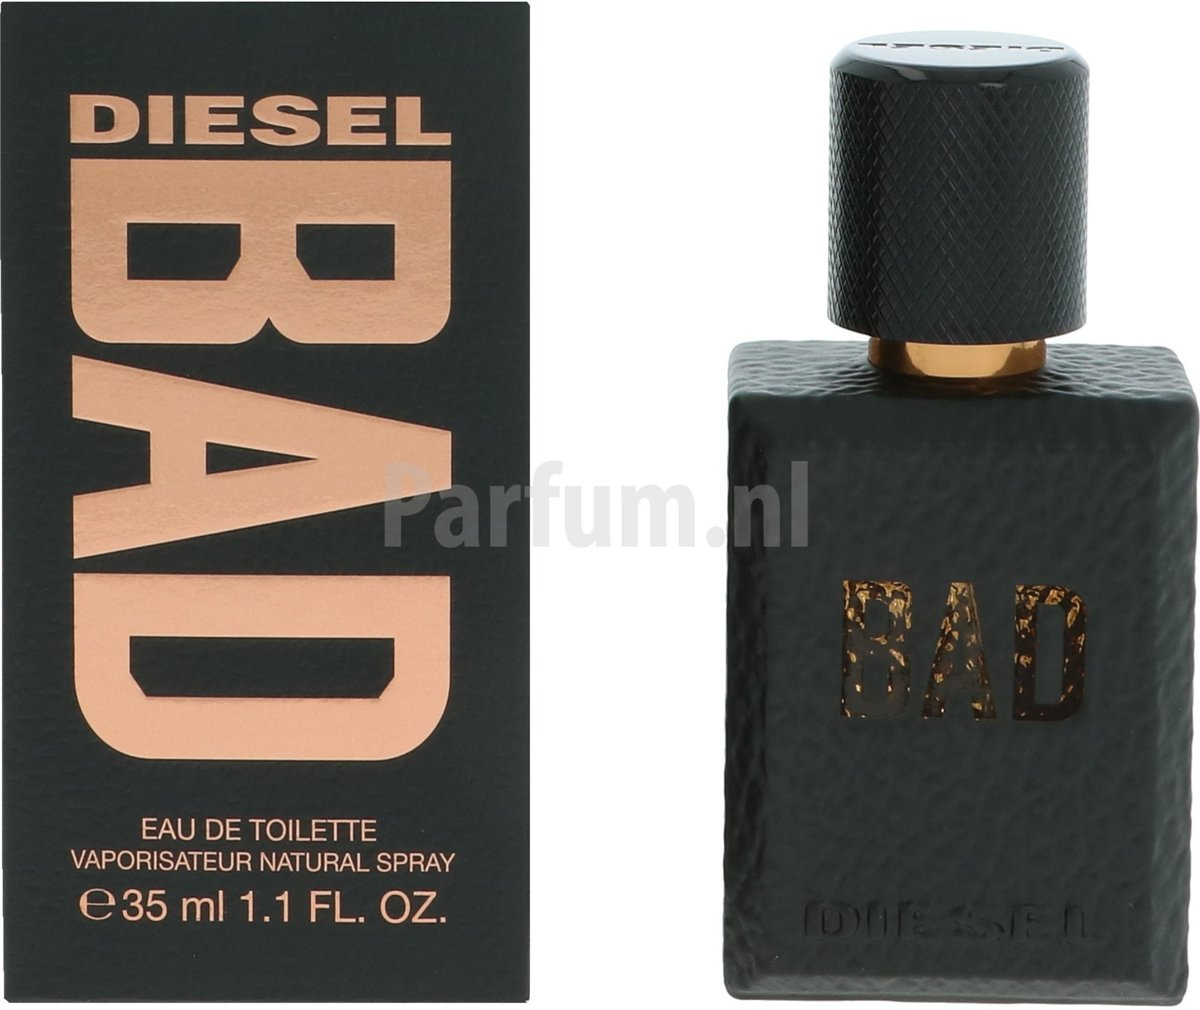 Diesel Bad Edt Spray 35 ml